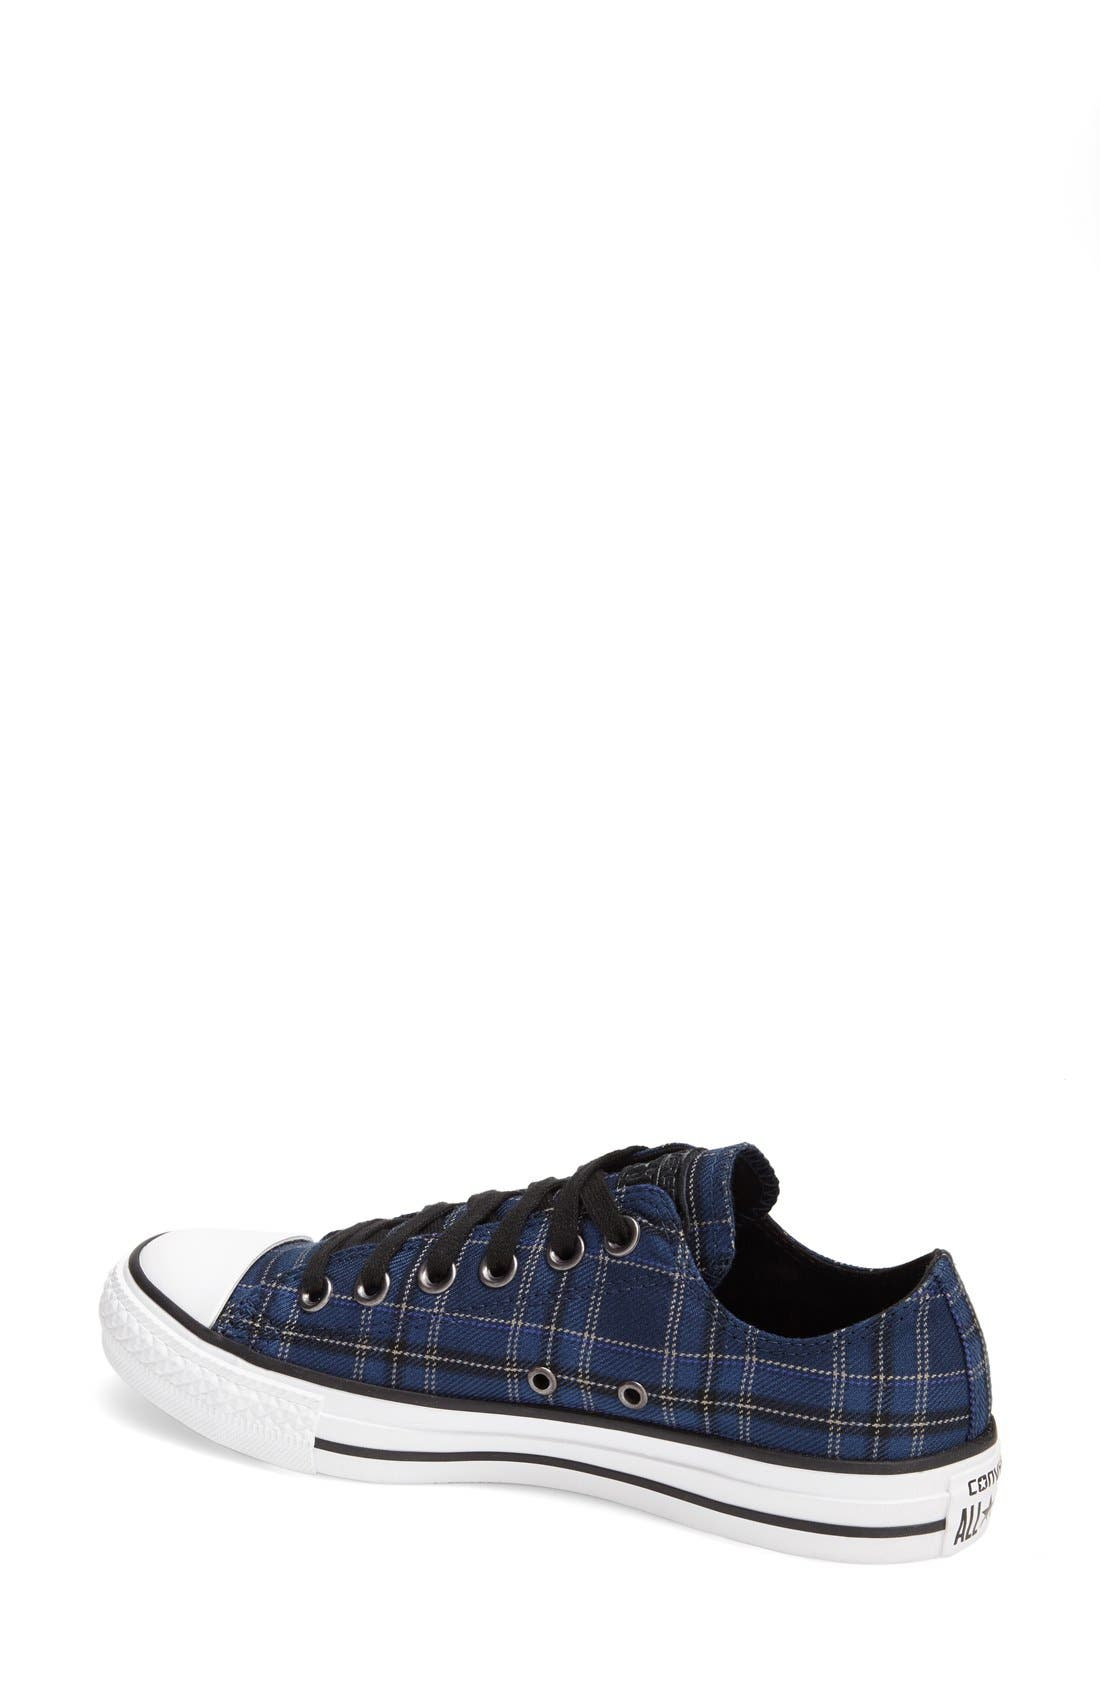 Chuck Taylor<sup>®</sup> All Star<sup>®</sup> Plaid Low Top Sneaker,                             Alternate thumbnail 3, color,                             250